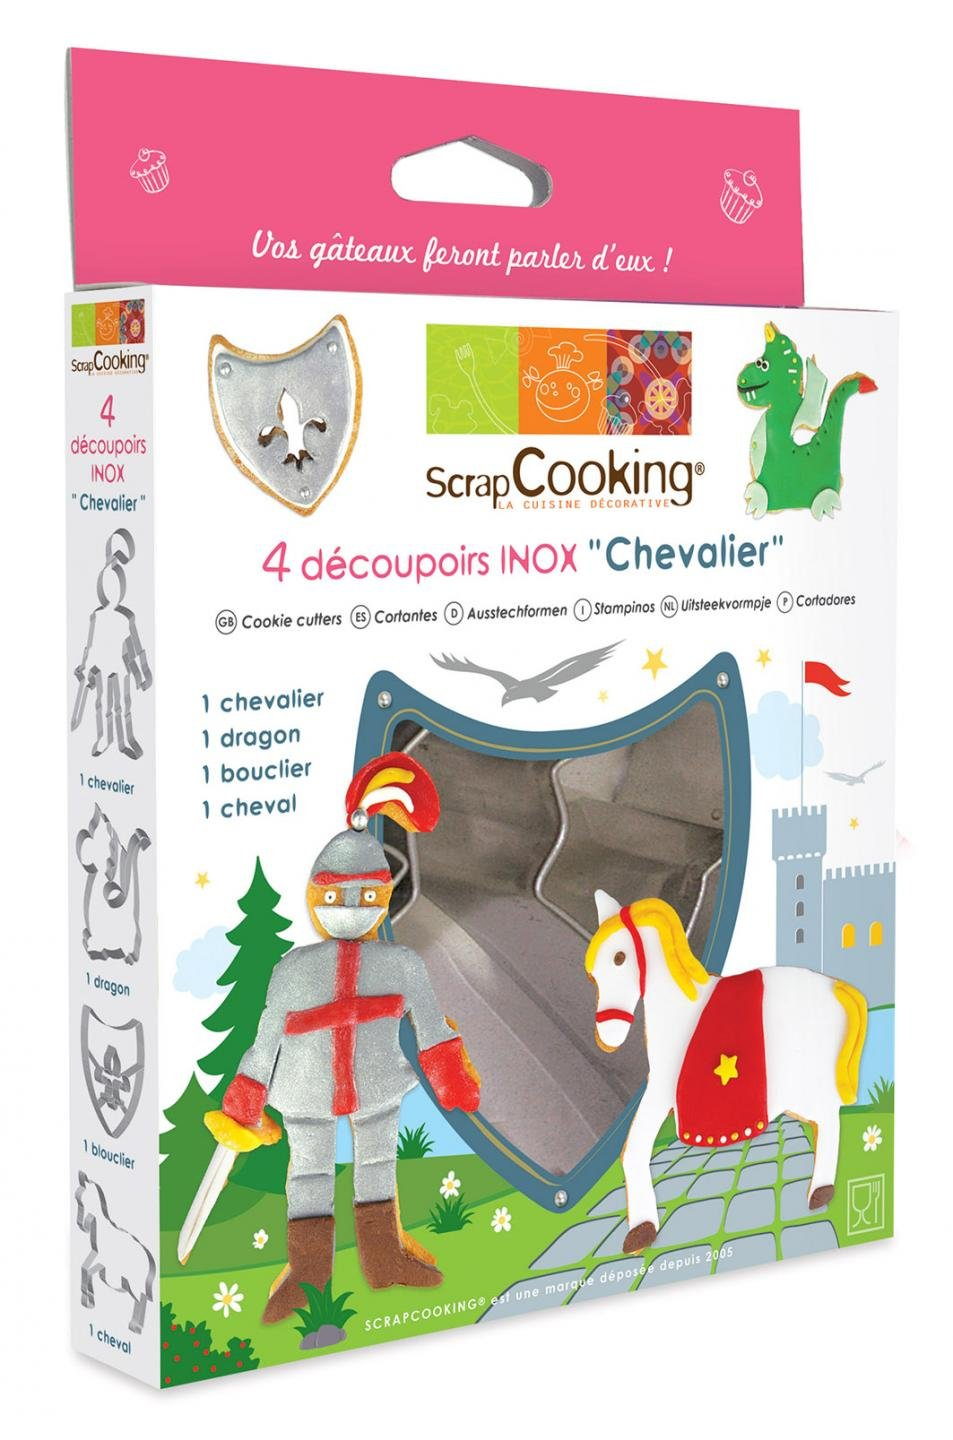 ScrapCooking Knight Cutters, Stainless Steel, Box of 4 by ScrapCooking